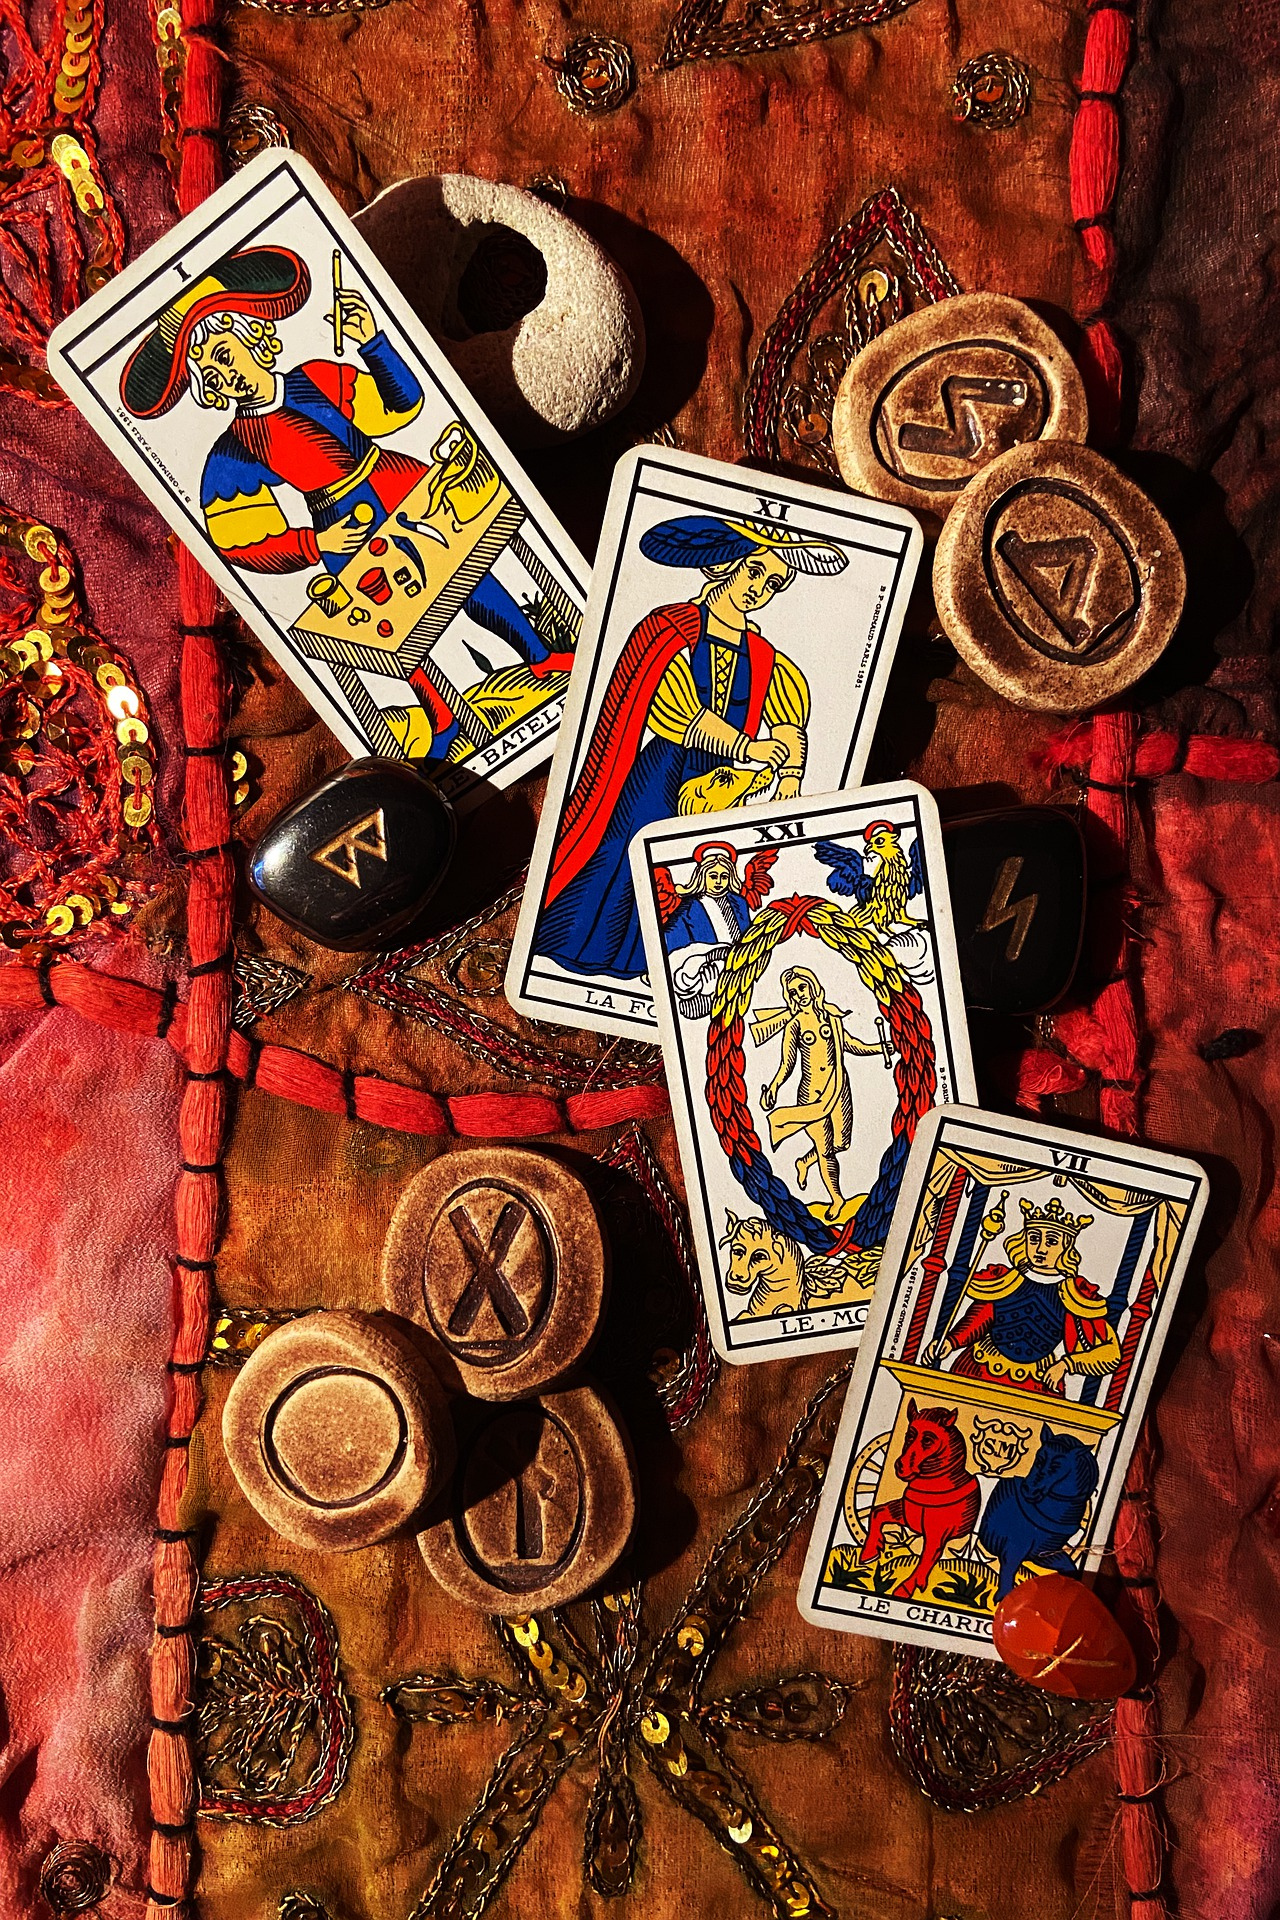 Free Positive Halloween Tarot Readings At The Eclipse Inn, Winchester